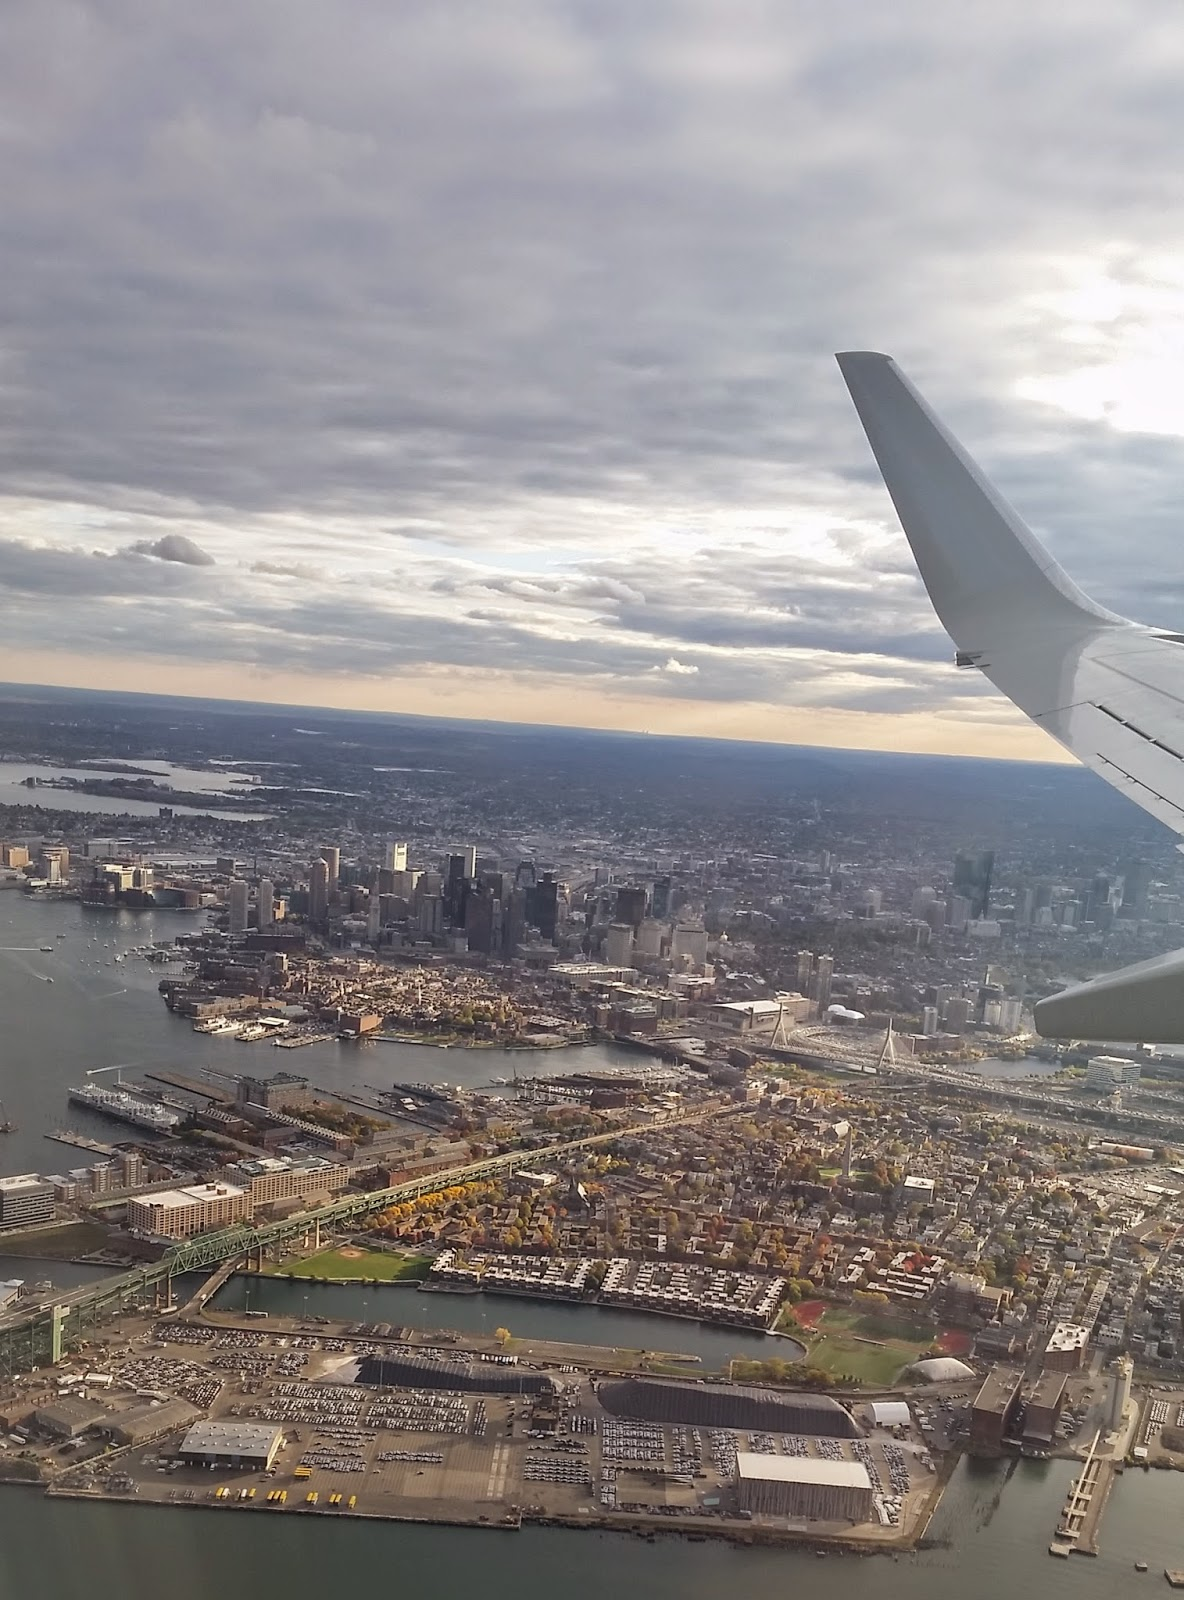 Boston skyline from above